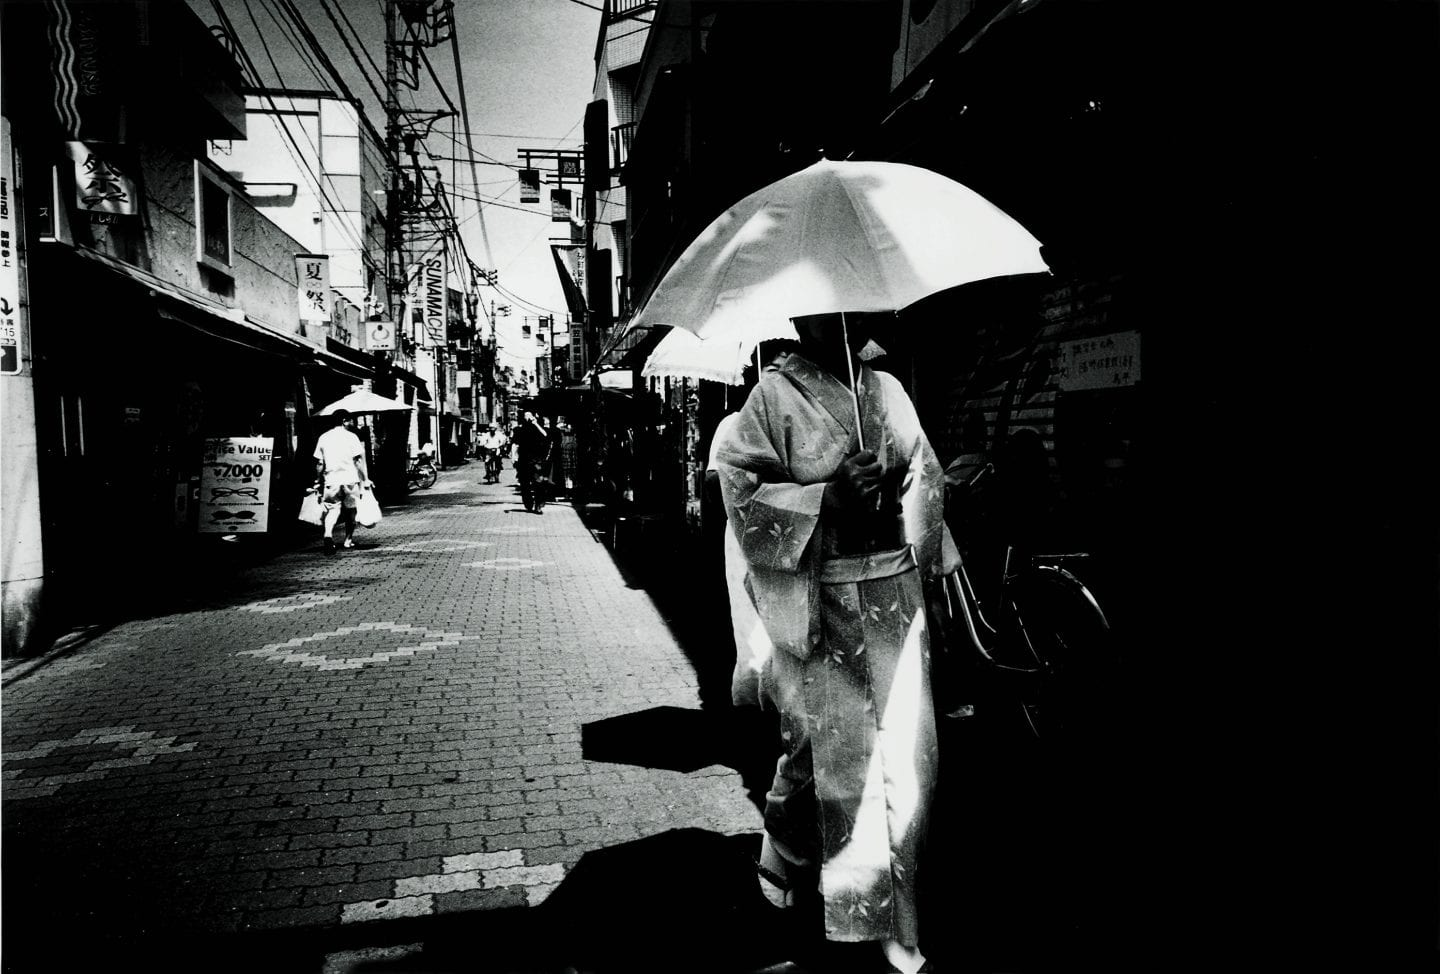 Daido Moriyama How I Take Photographs Laurence King